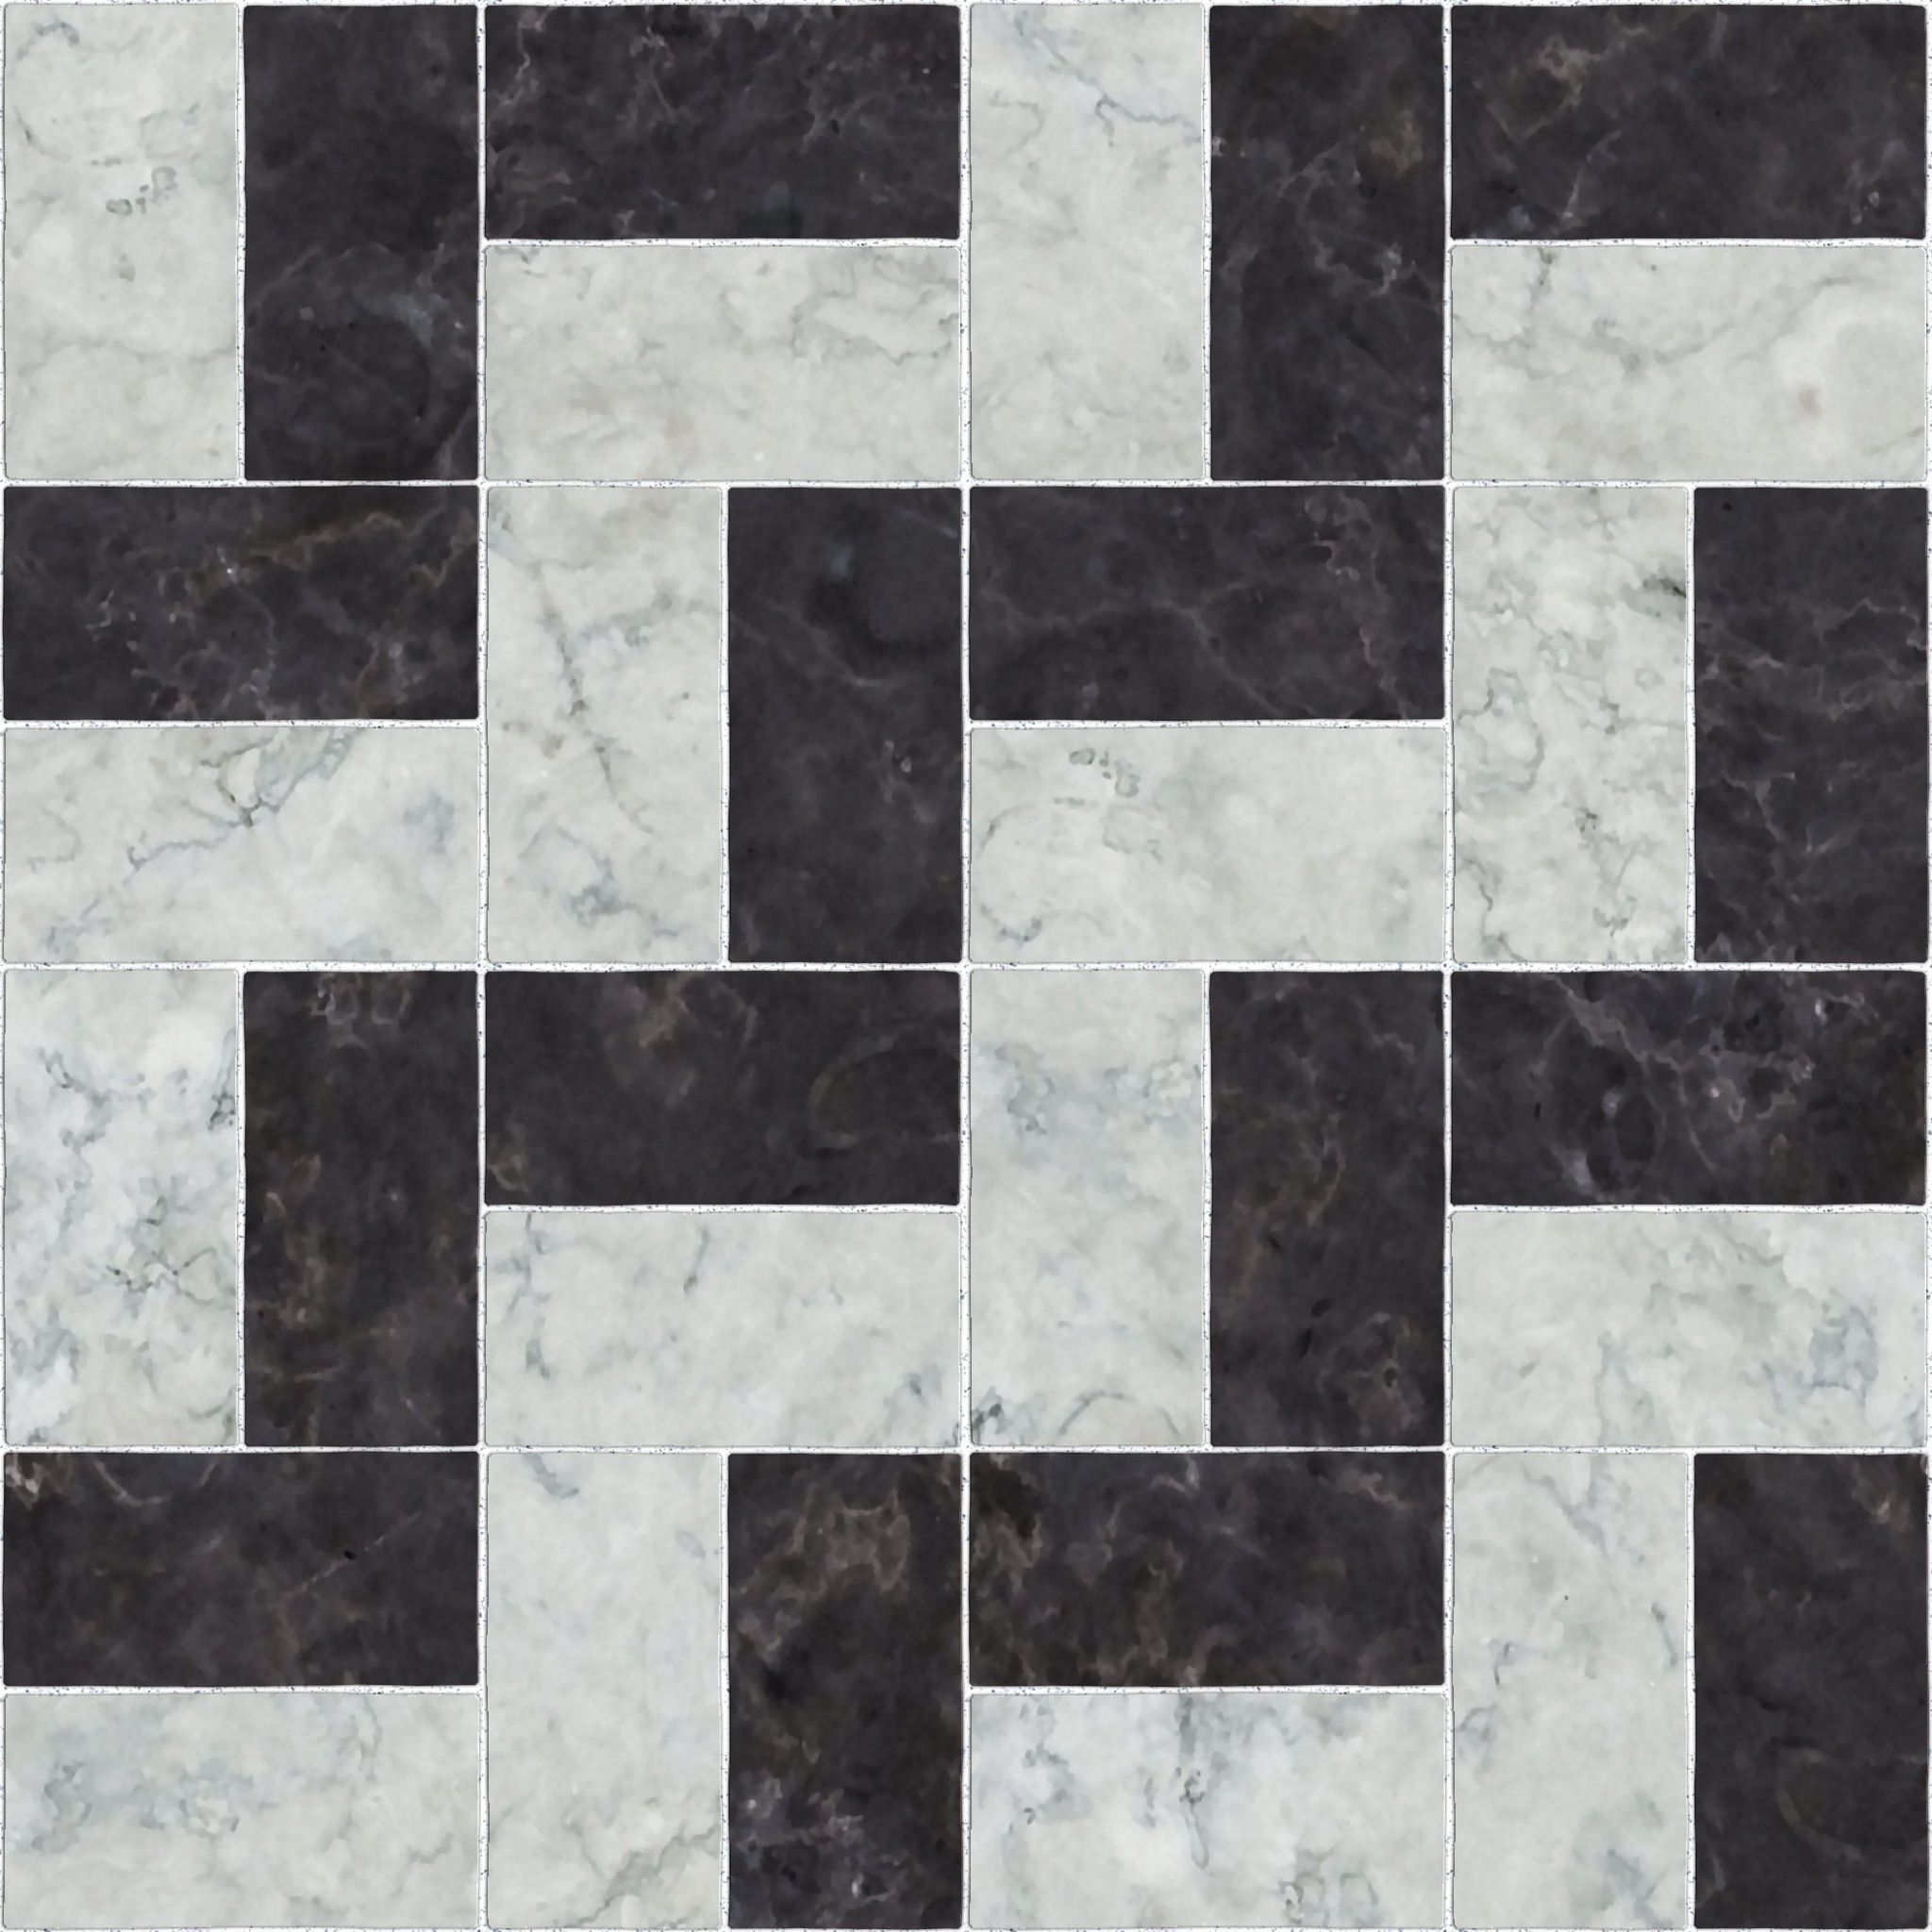 tile floor texture design. Tile Floor Texture Design Decorating 329521 A